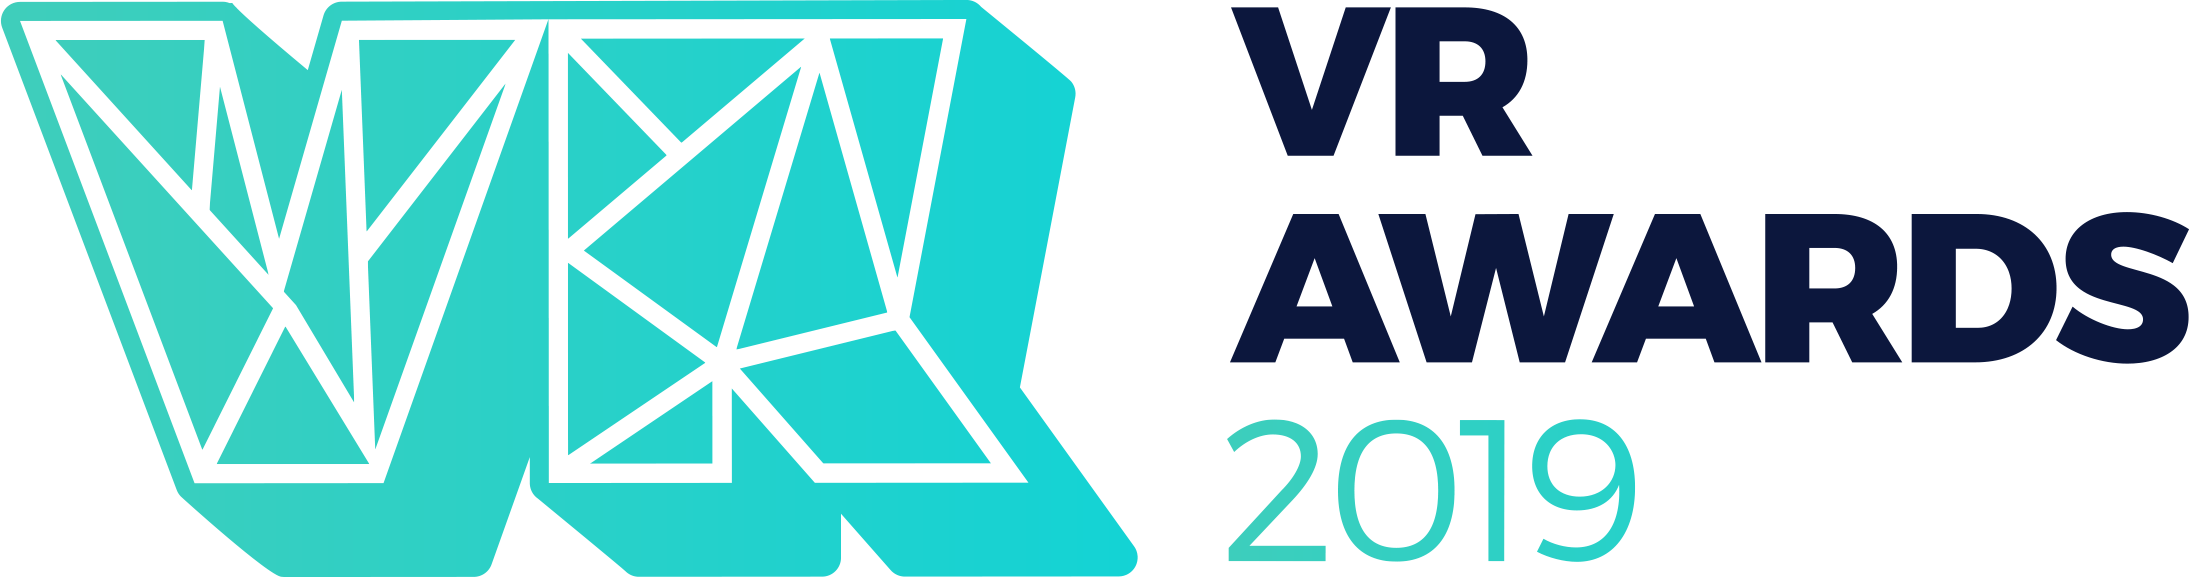 AIXR Members Save 20% on VR Awards Tickets - Claim this